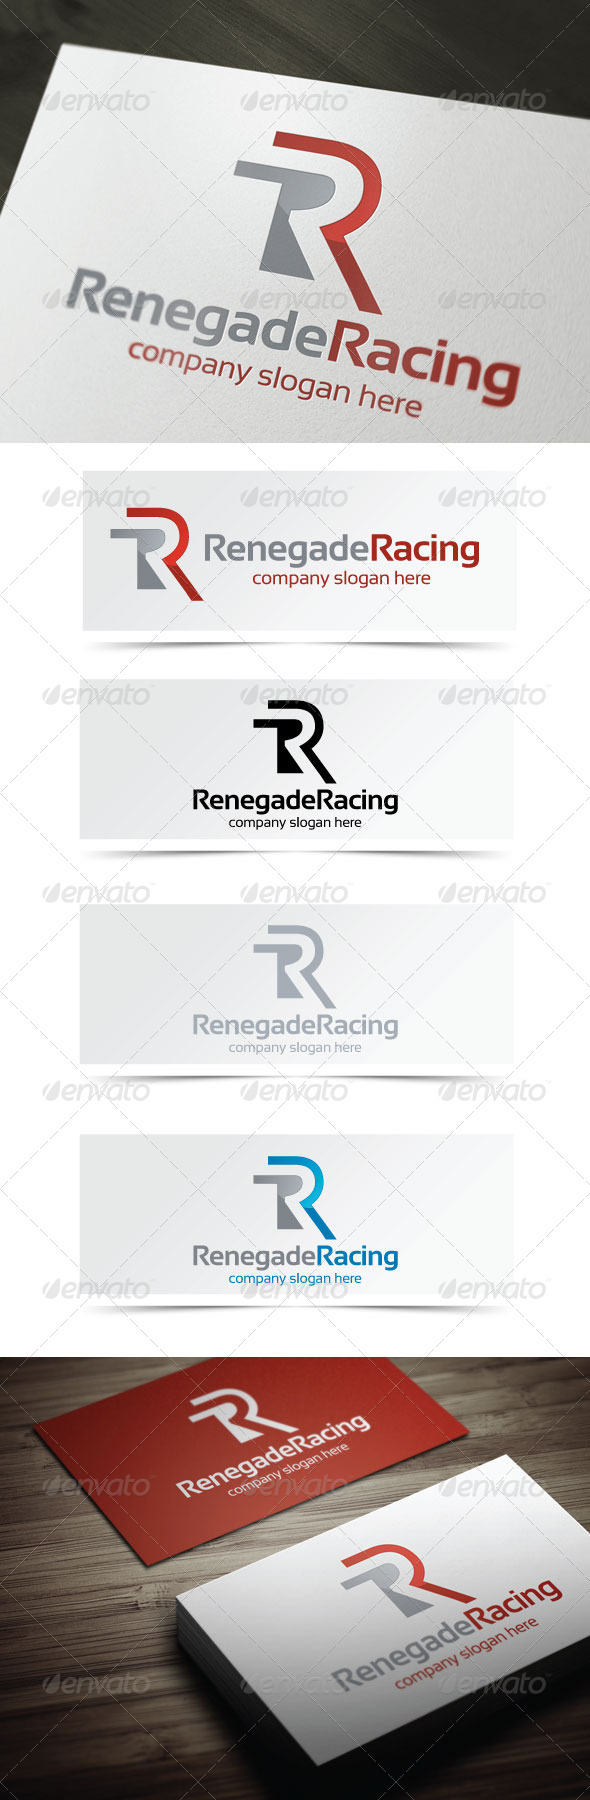 GraphicRiver Renegade Racing 4135351